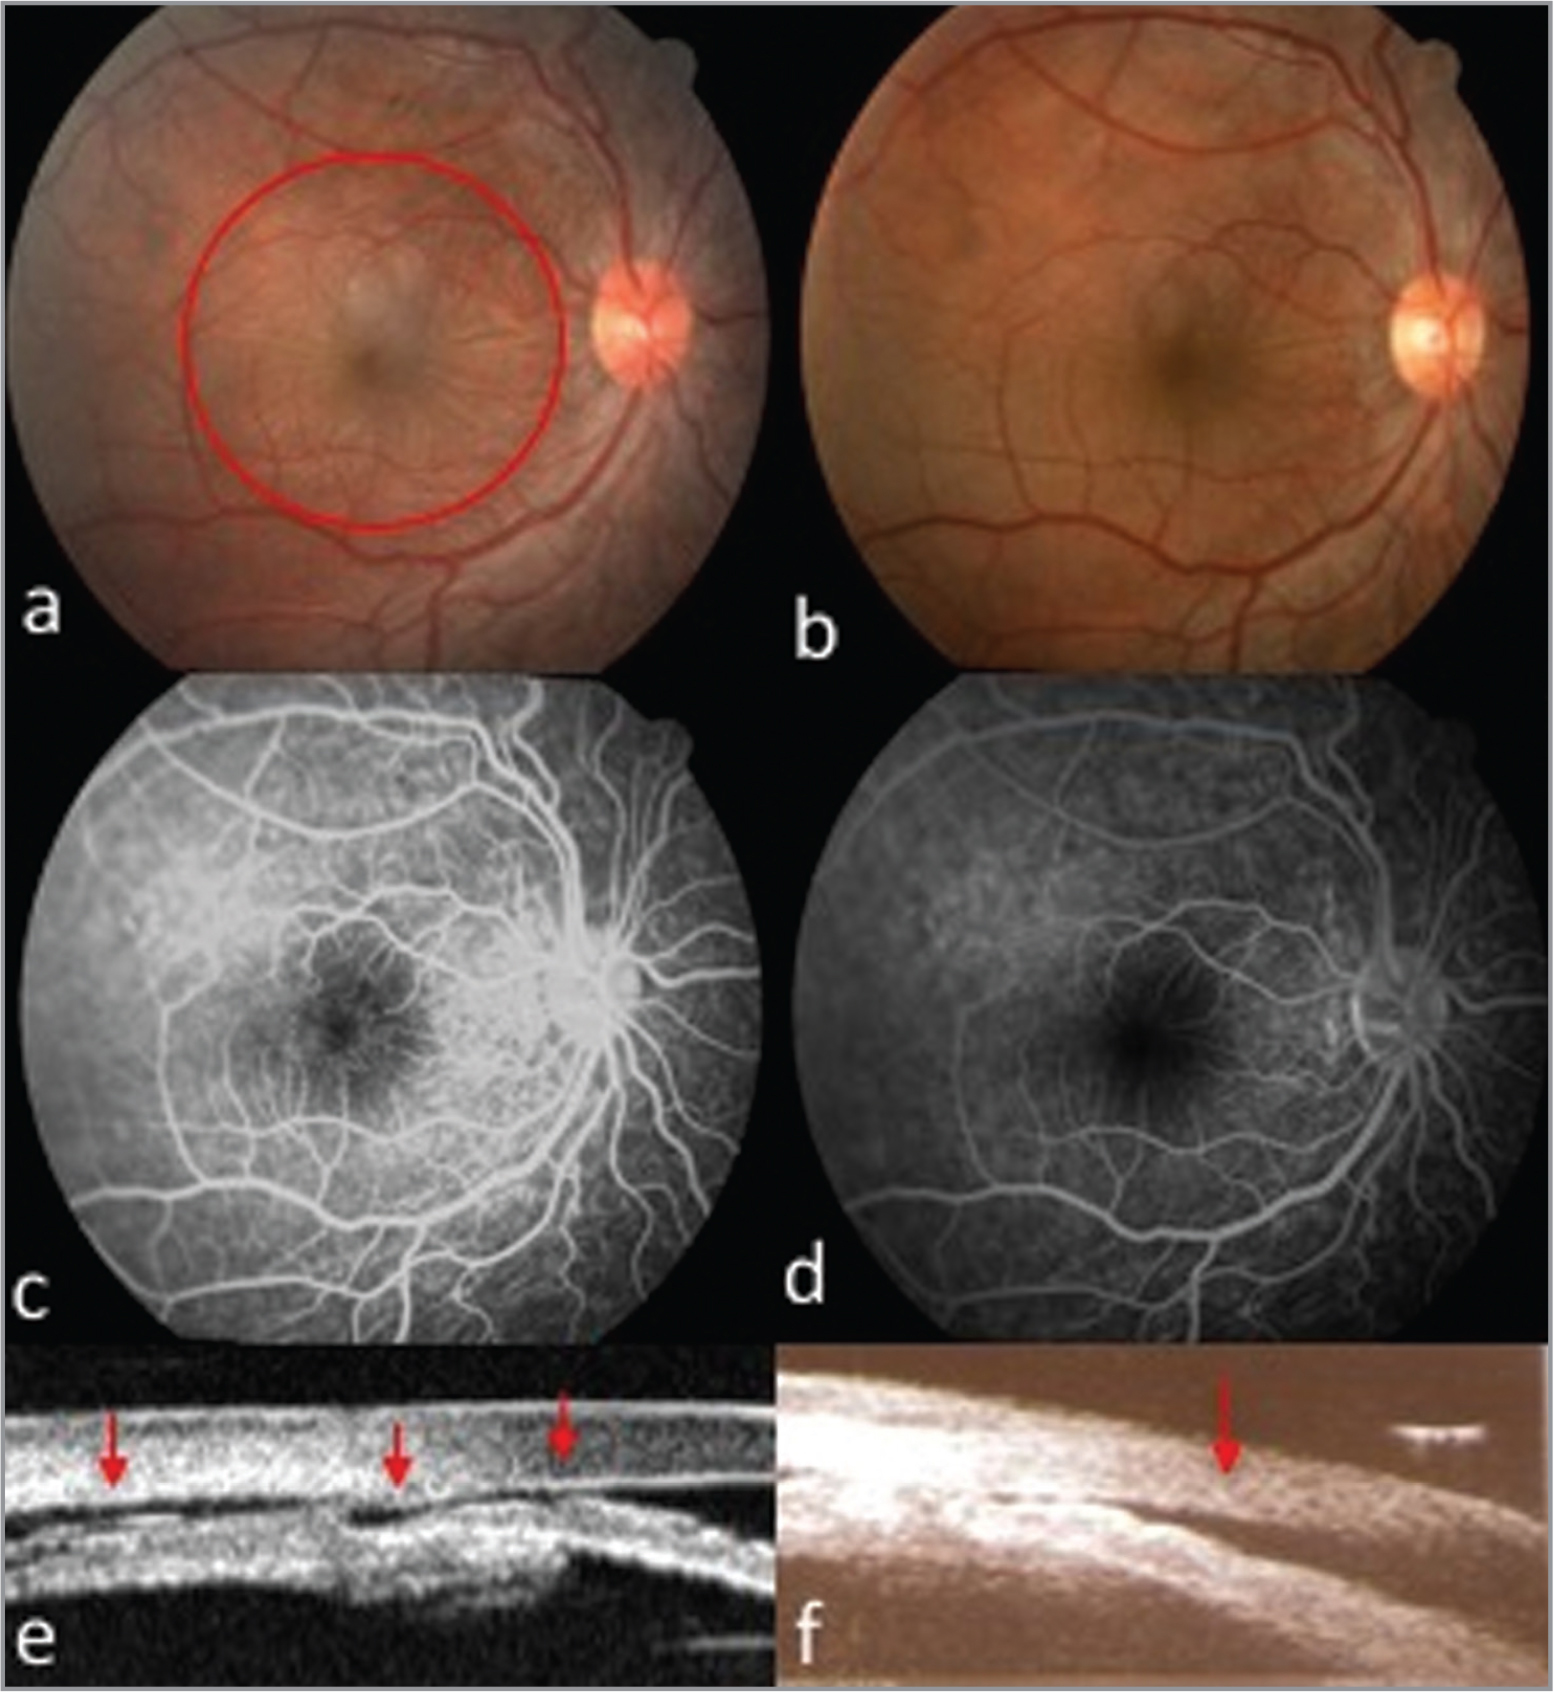 (a, b, e) Preoperative images. (b, d, f) Postoperative images. Color retinography: (a) Shows hypotonic maculopathy; (b) resolution of hypotonic maculopathy. (c, d) Presence and absence of hypotonic maculopathy; ultrabiomicroscopy image shows in (c) cyclodialysis cleft and ciliochoroidal detachment (CCD), and in (d) a CCD.